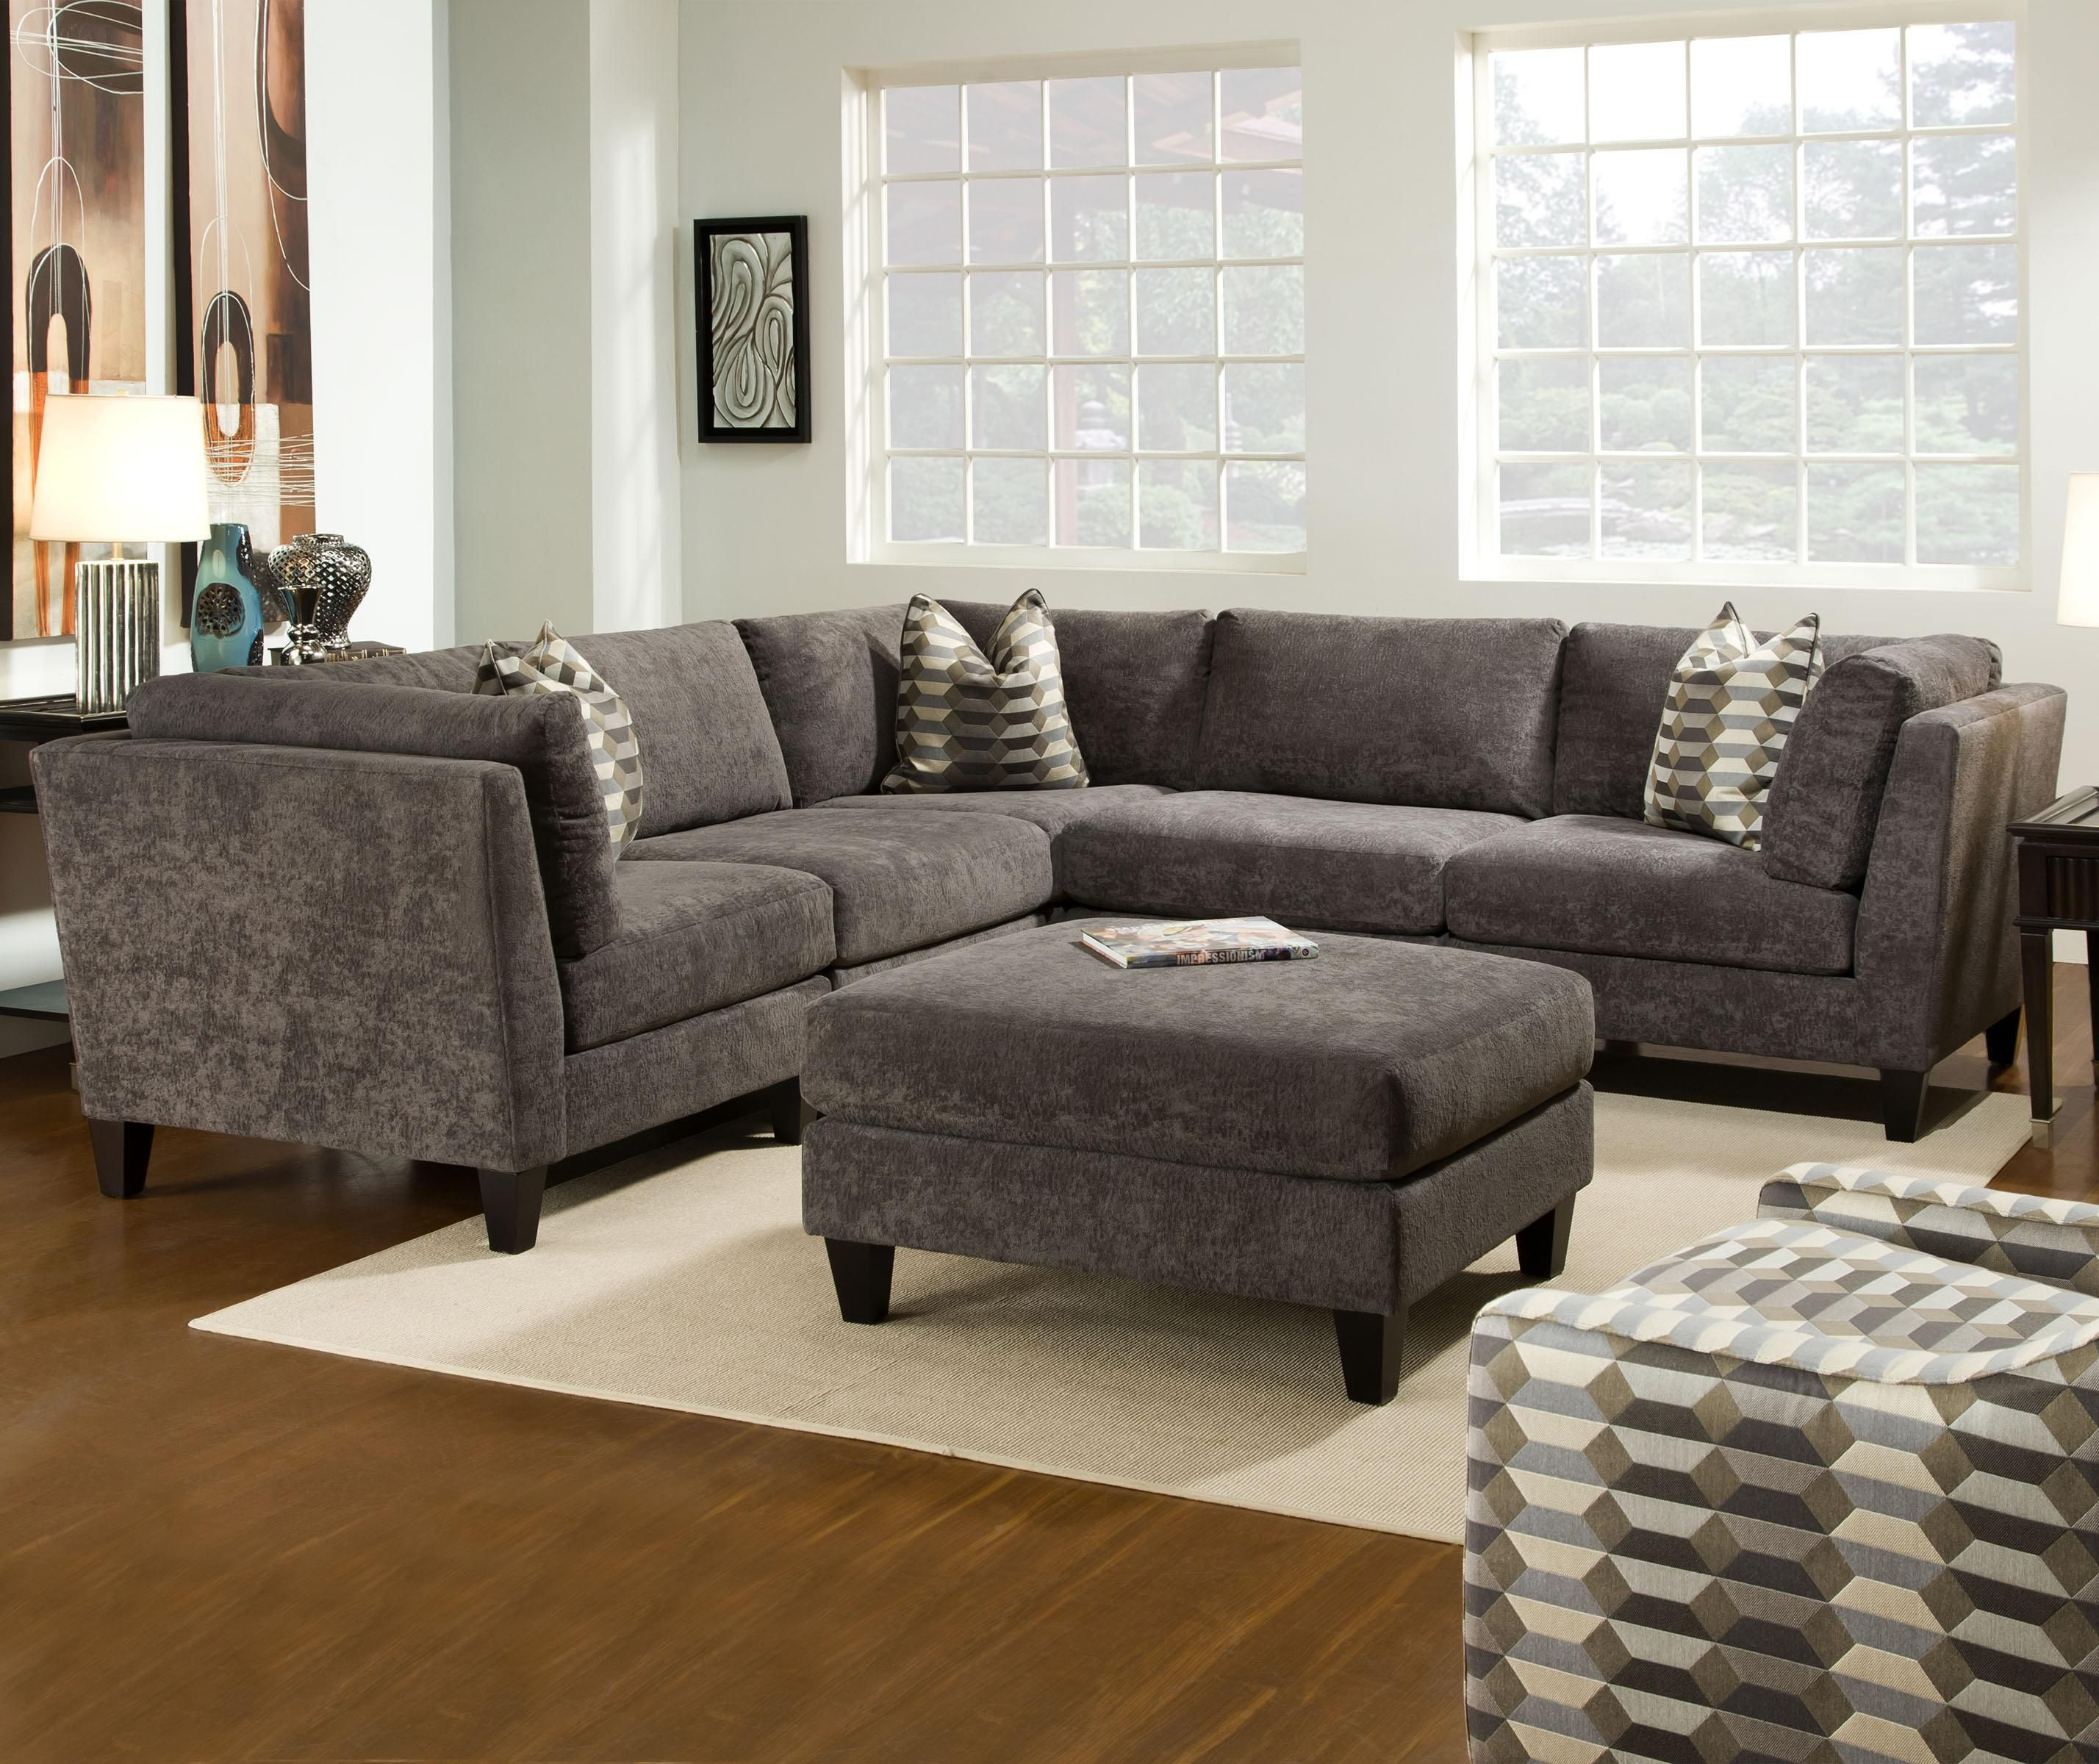 McGraw Contemporary Sectional with Tapered Legs by Bauhaus